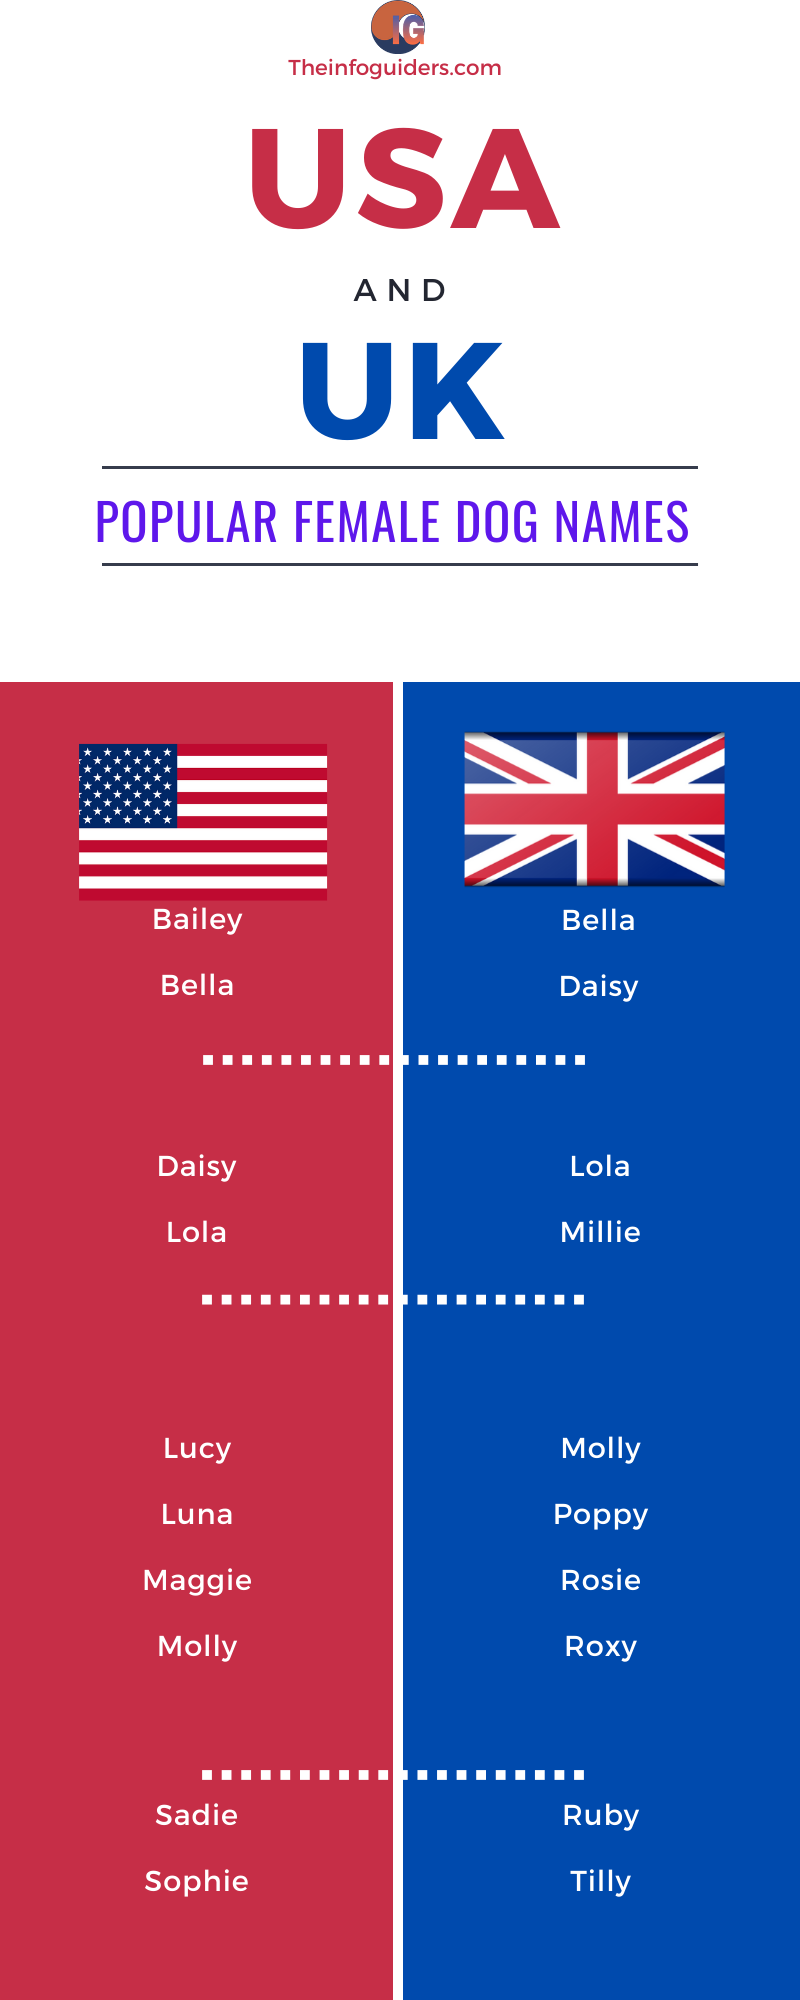 USA and UK Popular Female Dog Names